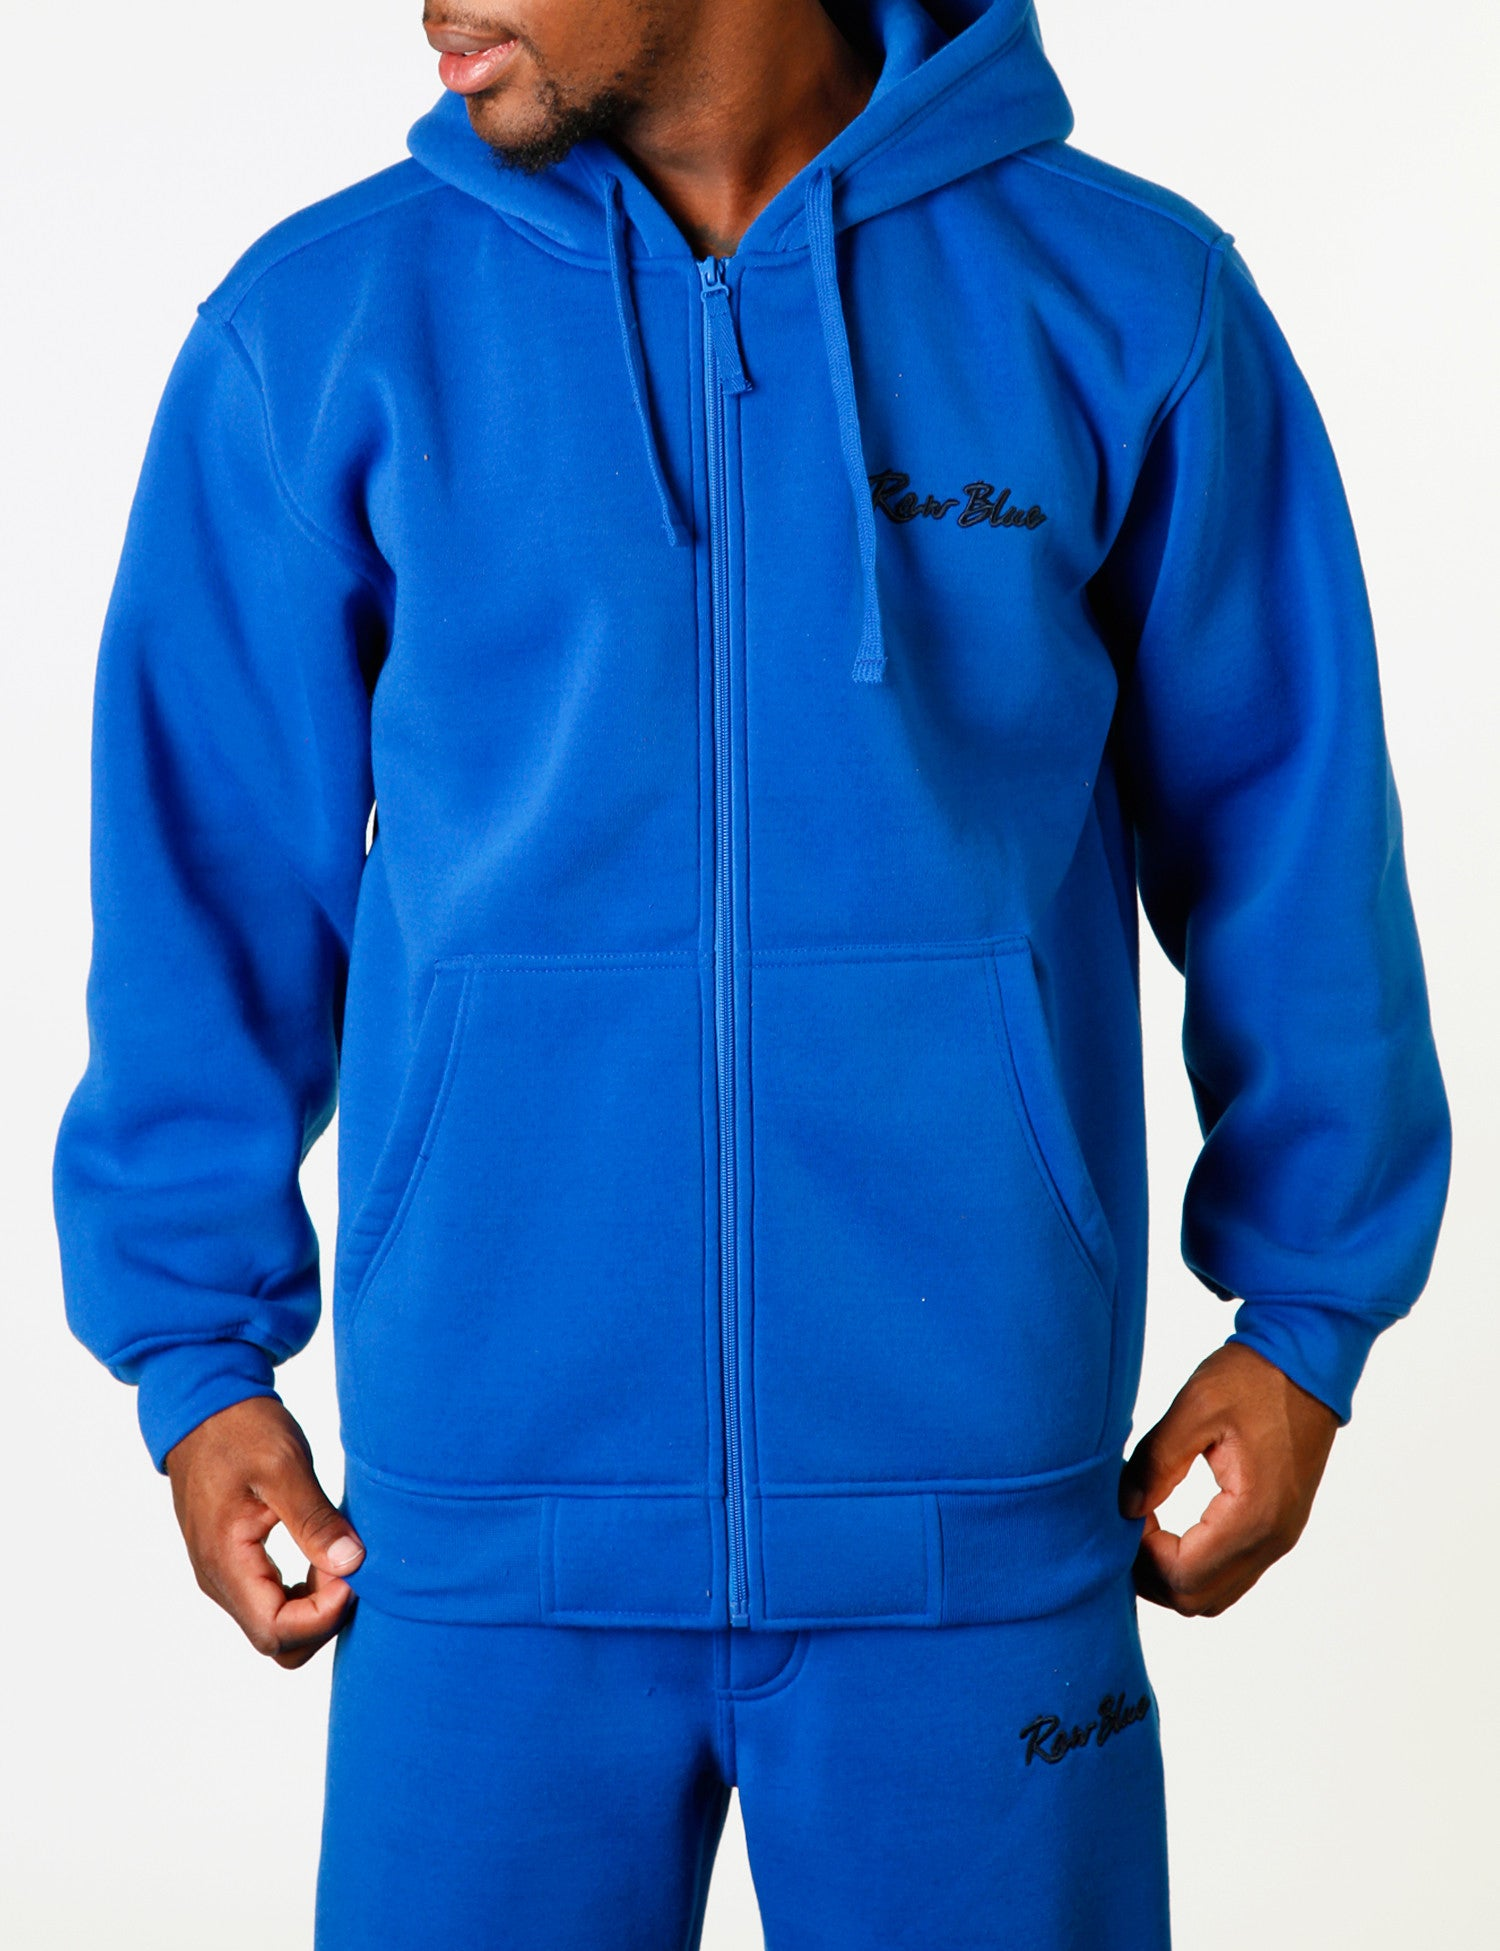 Signature Zip Hoody EF-4572 Blue